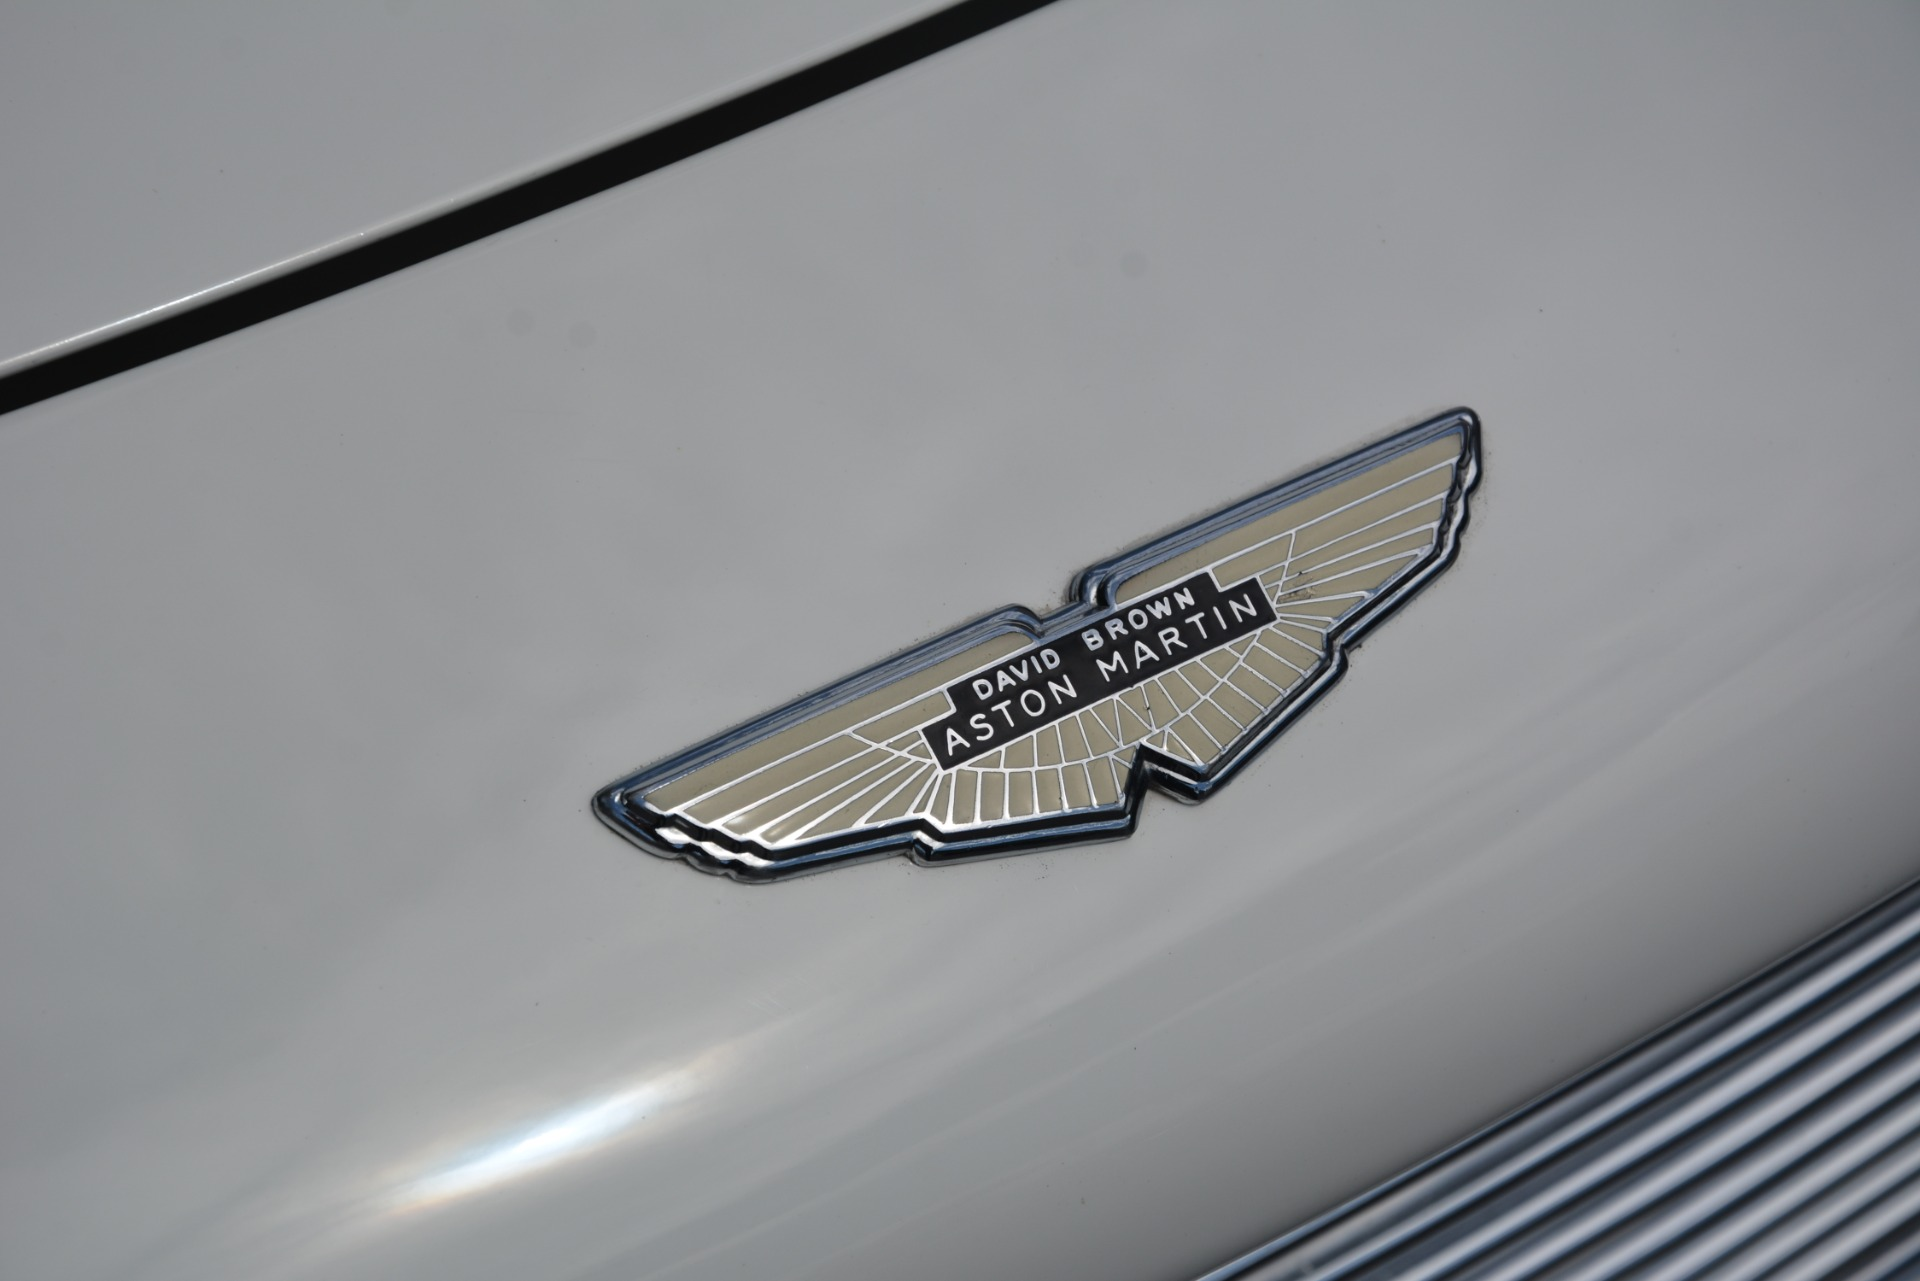 Used 1961 Aston Martin DB4 Series IV Coupe For Sale In Greenwich, CT 3186_p18